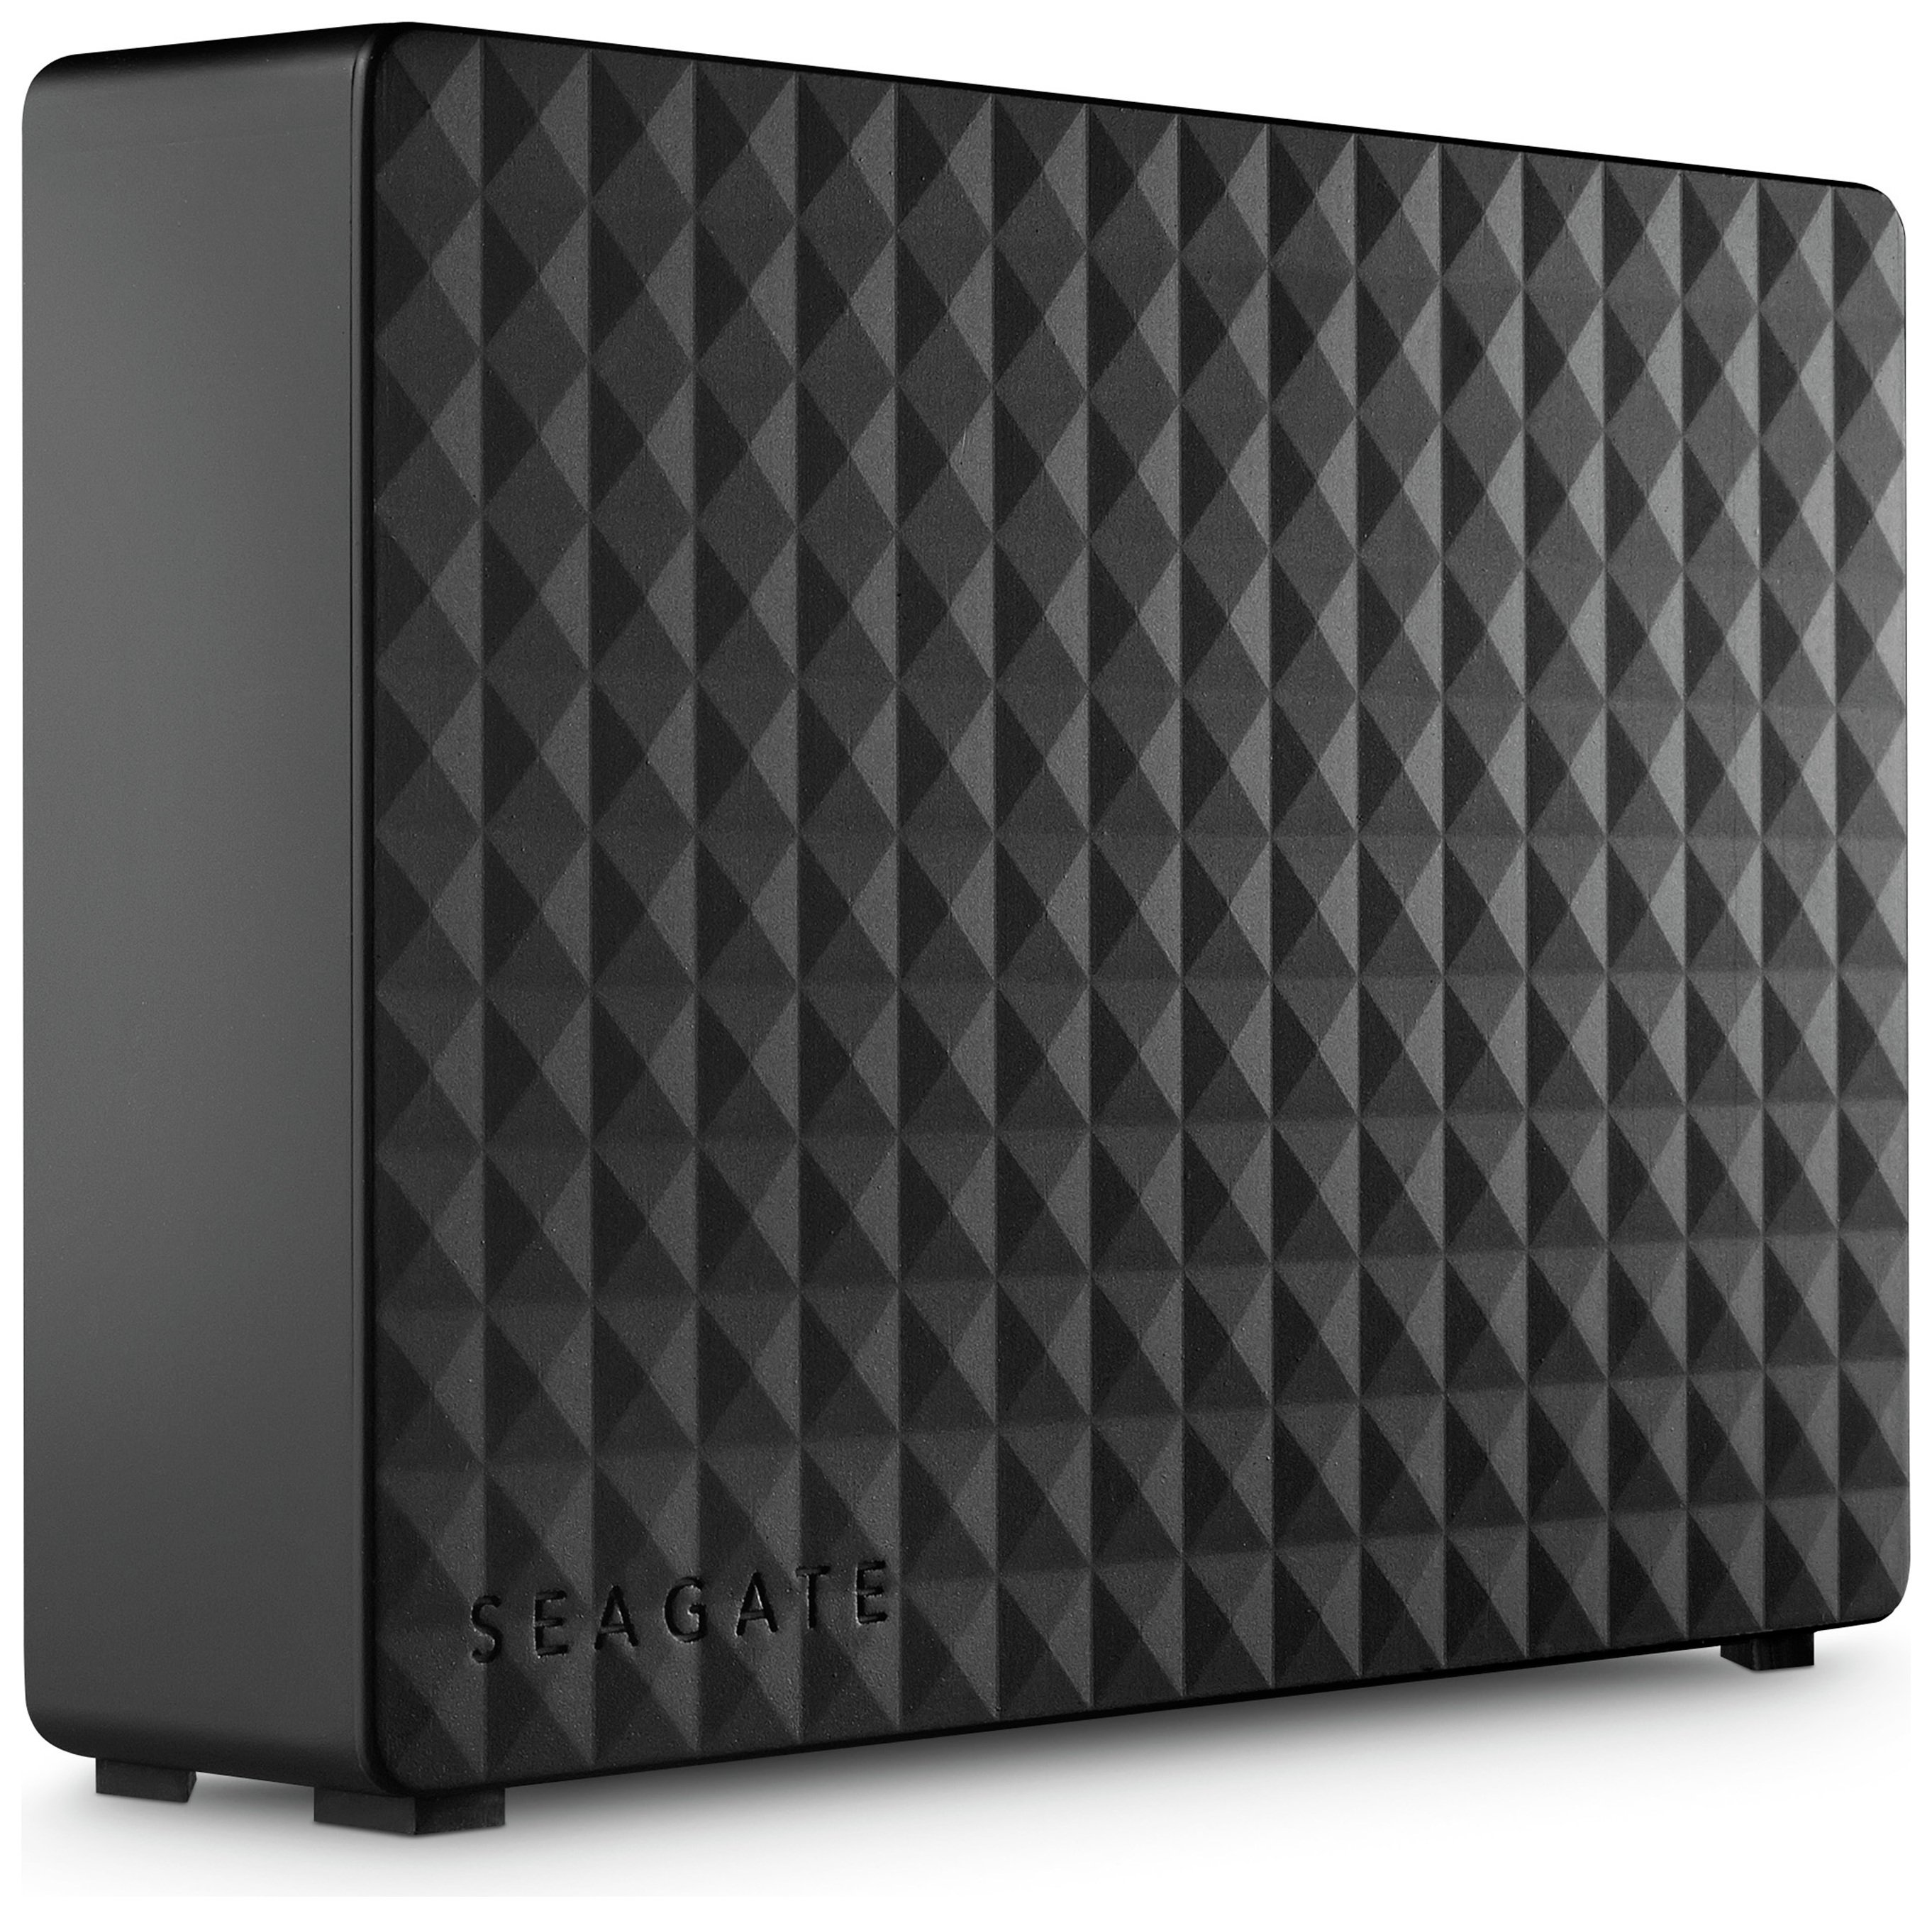 seagate-expansion-3tb-usb-30-desktop-hard-drive-black